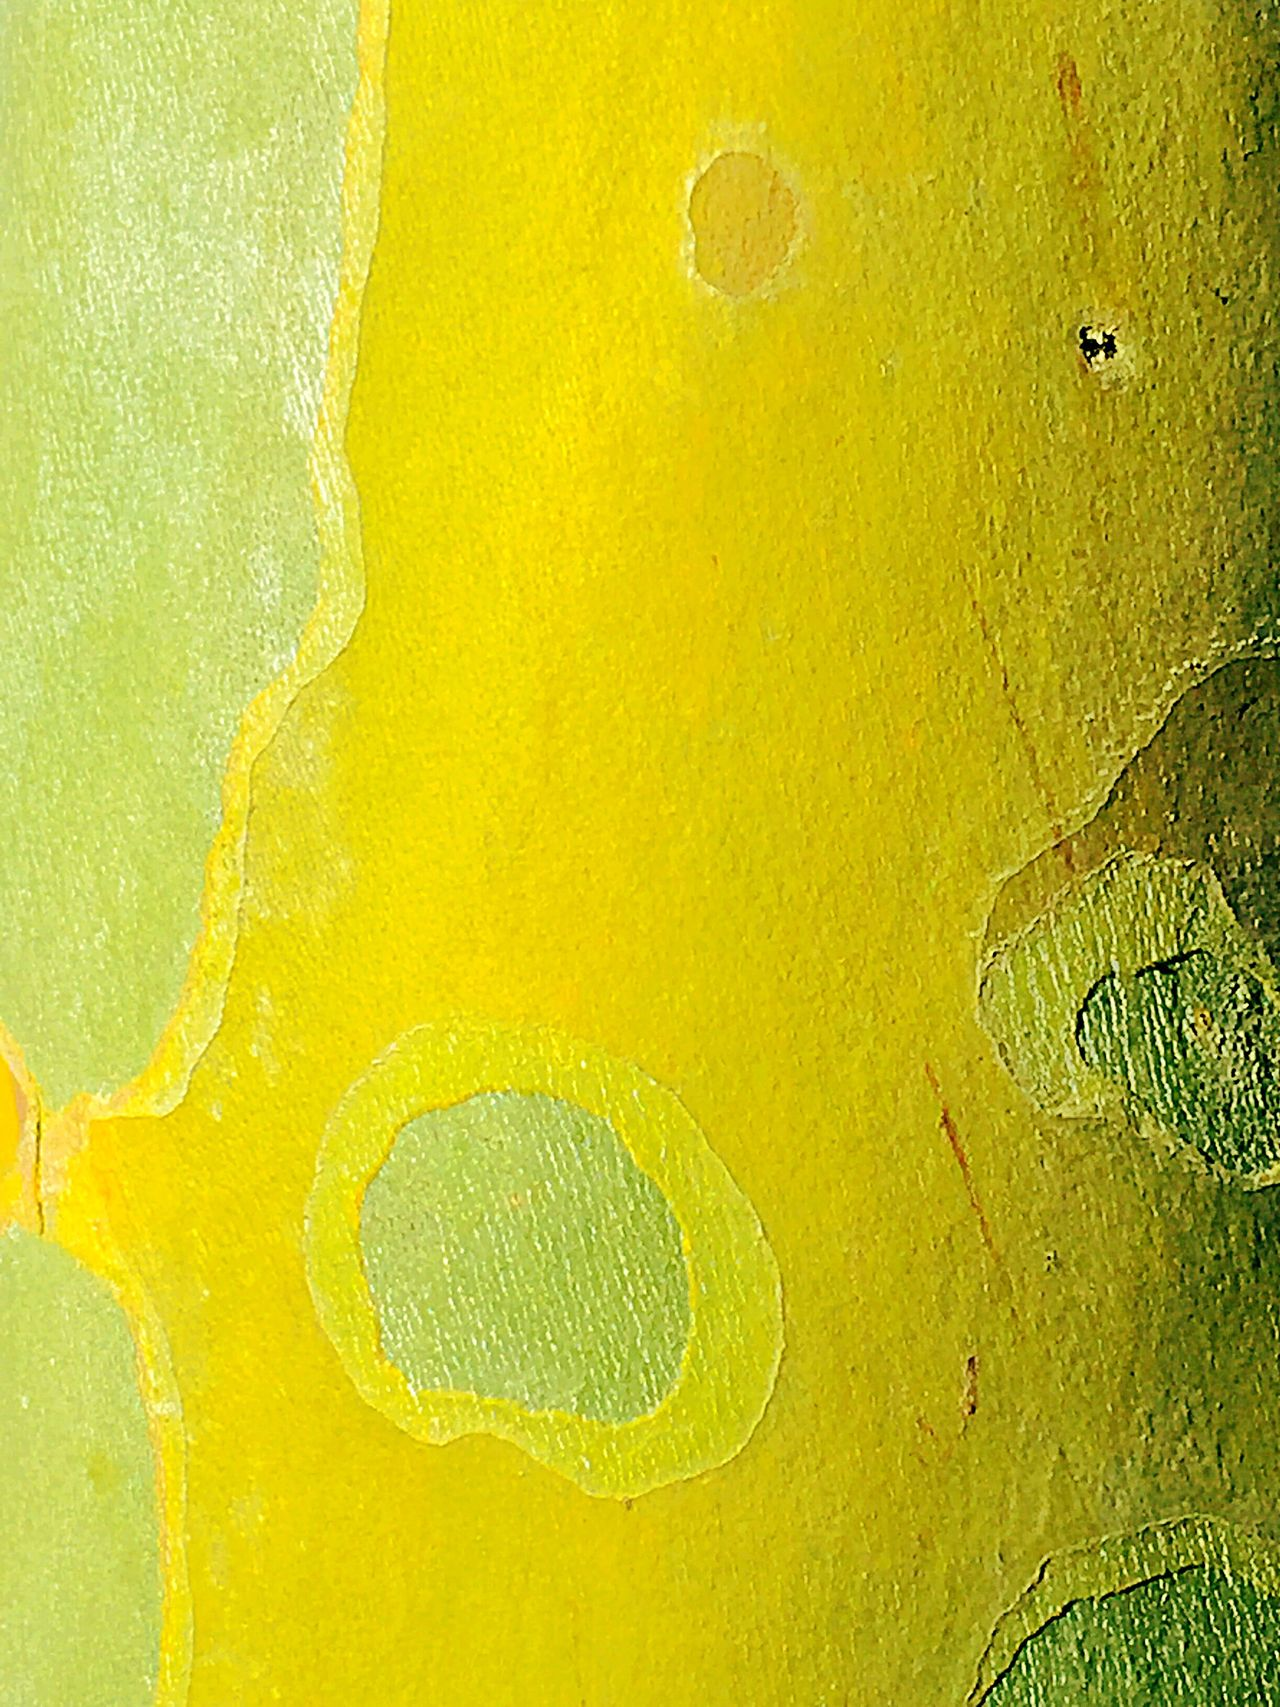 Smooth Curves: Bark Texture Australia Trees TreePorn Tree Bark Bark Texture Bark Texture Background Tree Closeup Nature_perfection Tree Trunk Naturephotography Yellow Bark Green Bark Unique Bark Smooth Bark Naturecolor